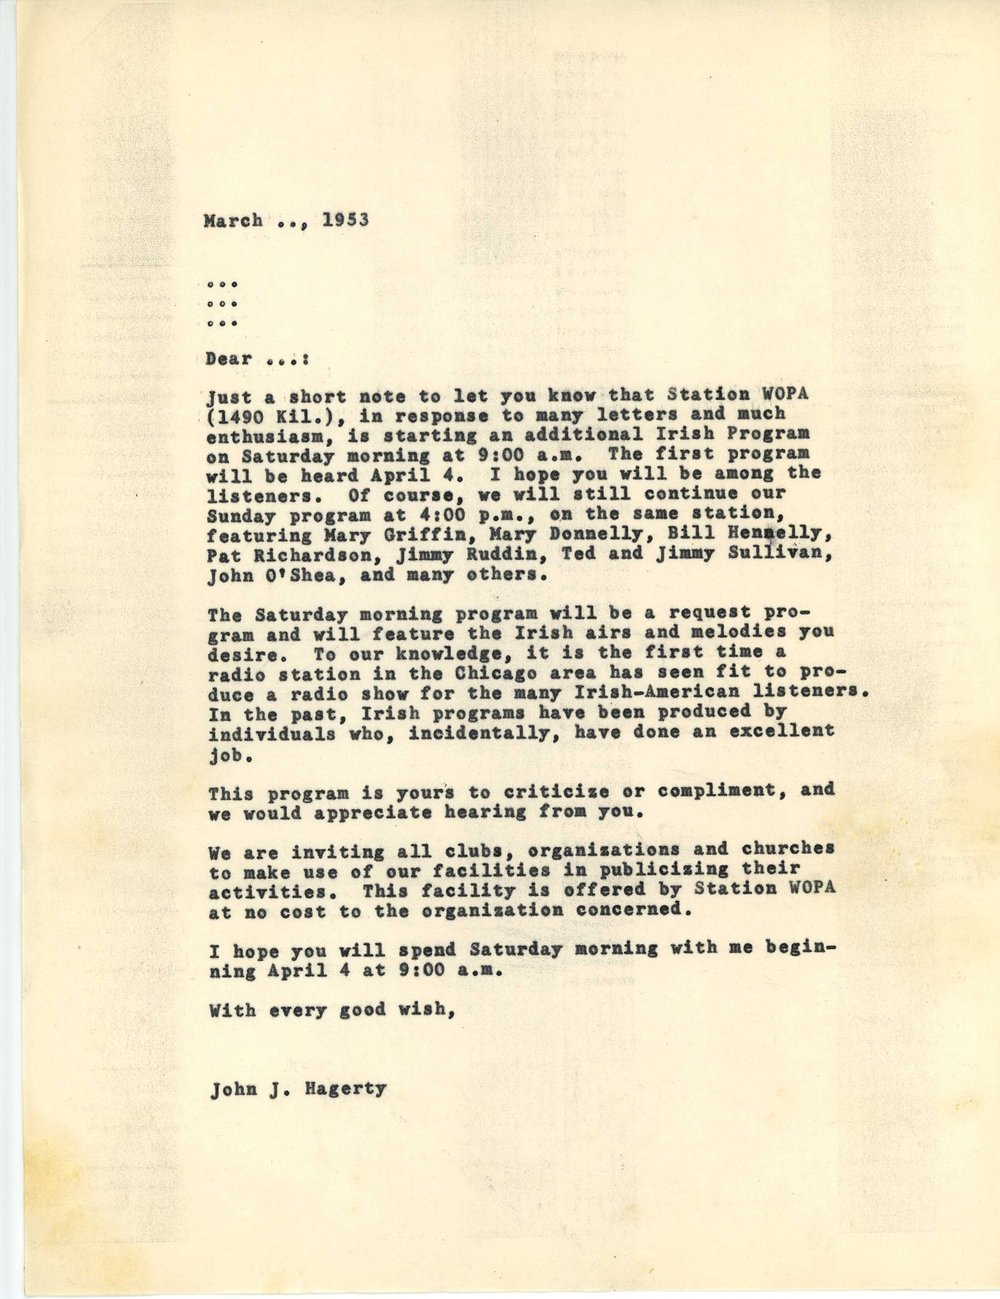 jack hagerty letter re start of sat irish hour.jpg